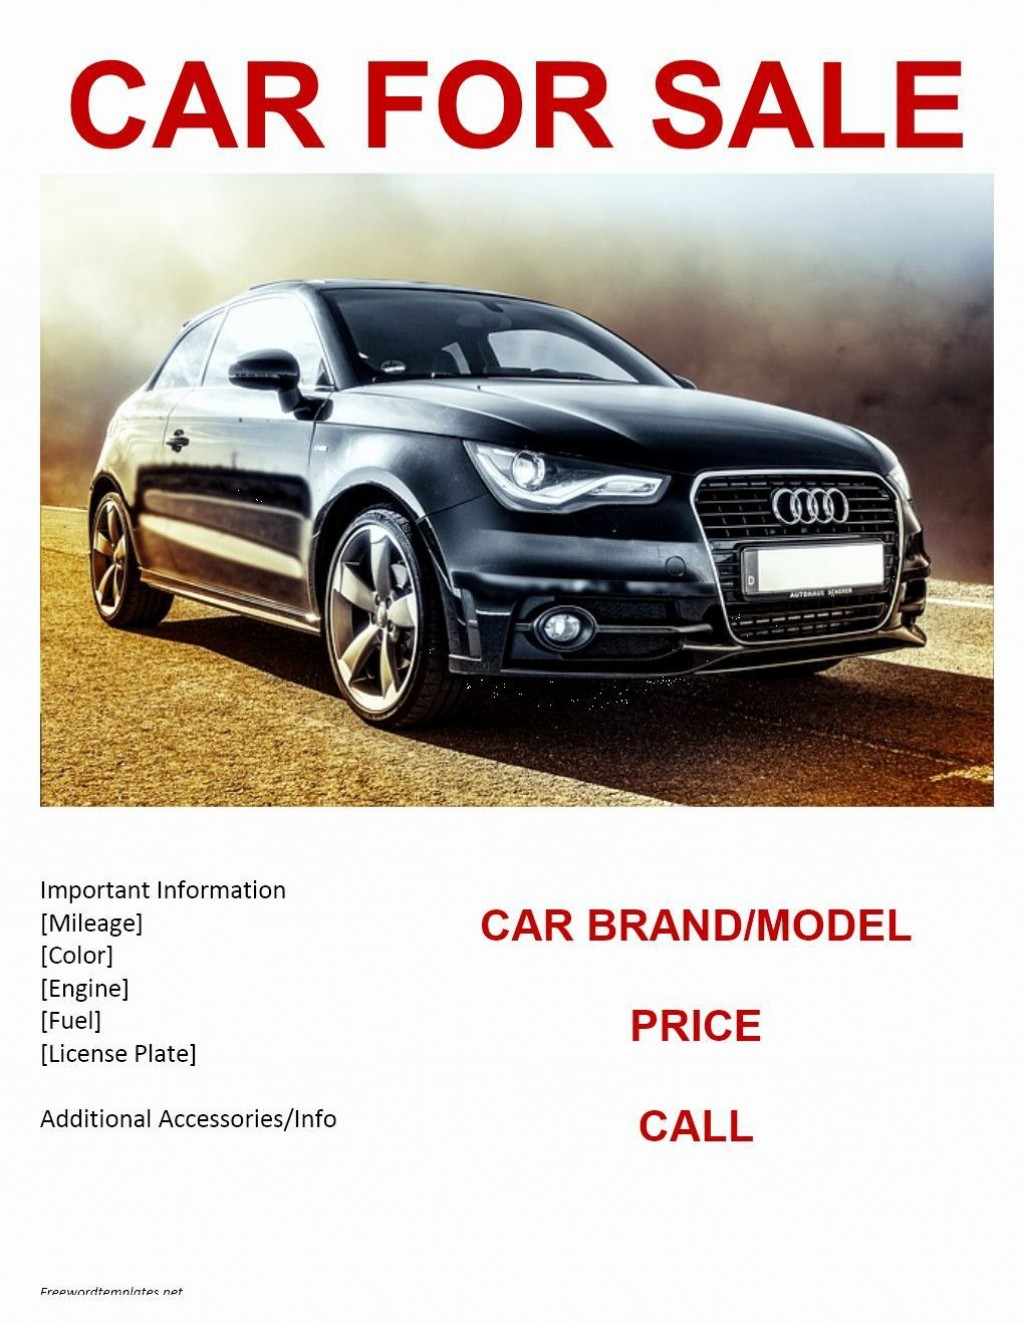 000 Unforgettable Car For Sale Template Photo  Sign Word Bill Of UkLarge